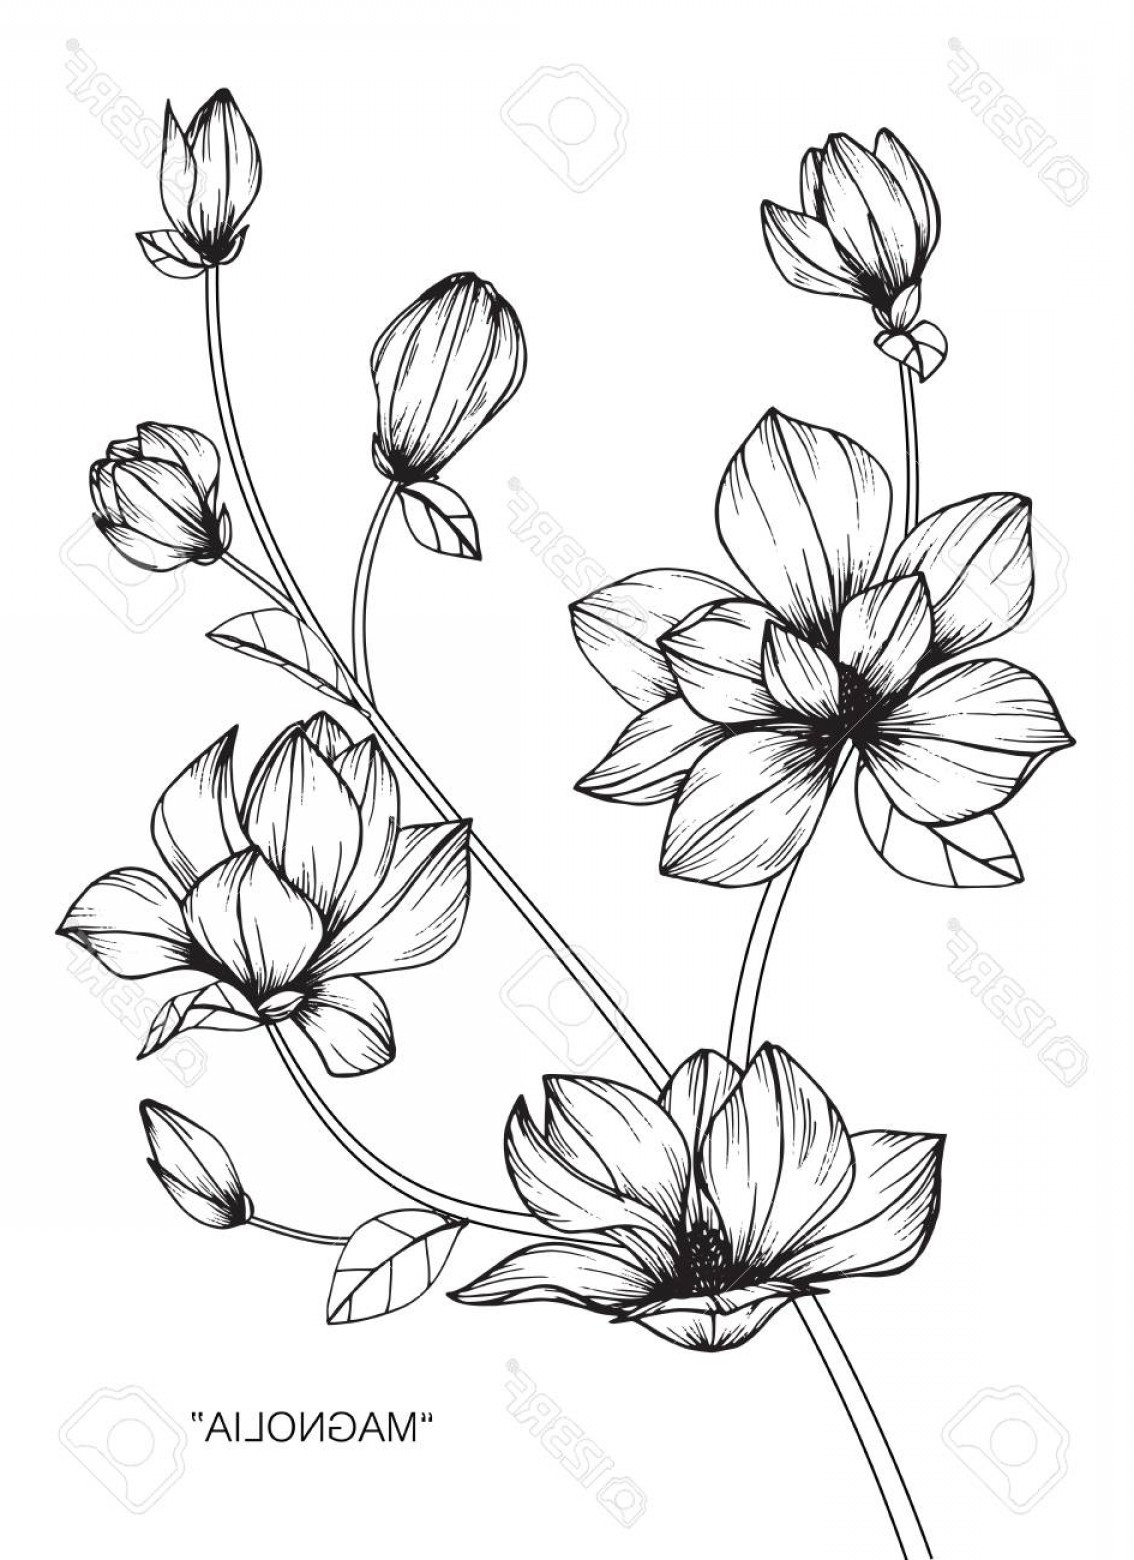 Magnolia Black And White Vector: Photostock Vector Magnolia Flower Drawing And Sketch With Black And White Line Art